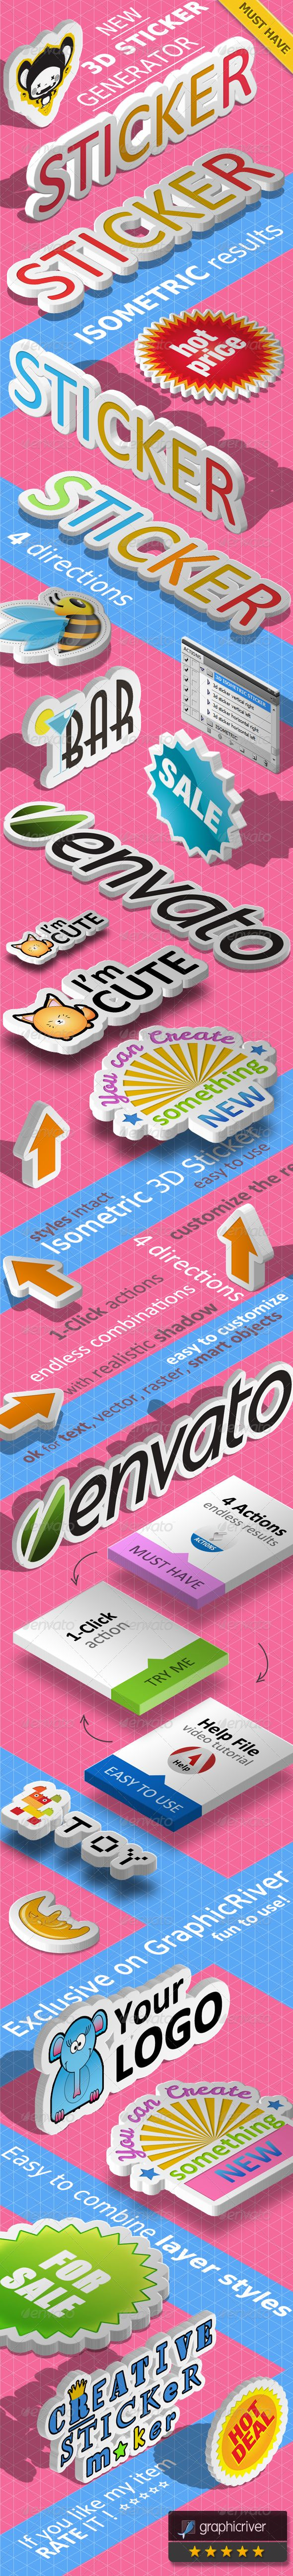 3D Isometric Sticker Photoshop Action  #3d text #isometric drawing #isometric effect • Available here → http://graphicriver.net/item/3d-isometric-sticker-photoshop-action/5092192?s_rank=86&ref=pxcr